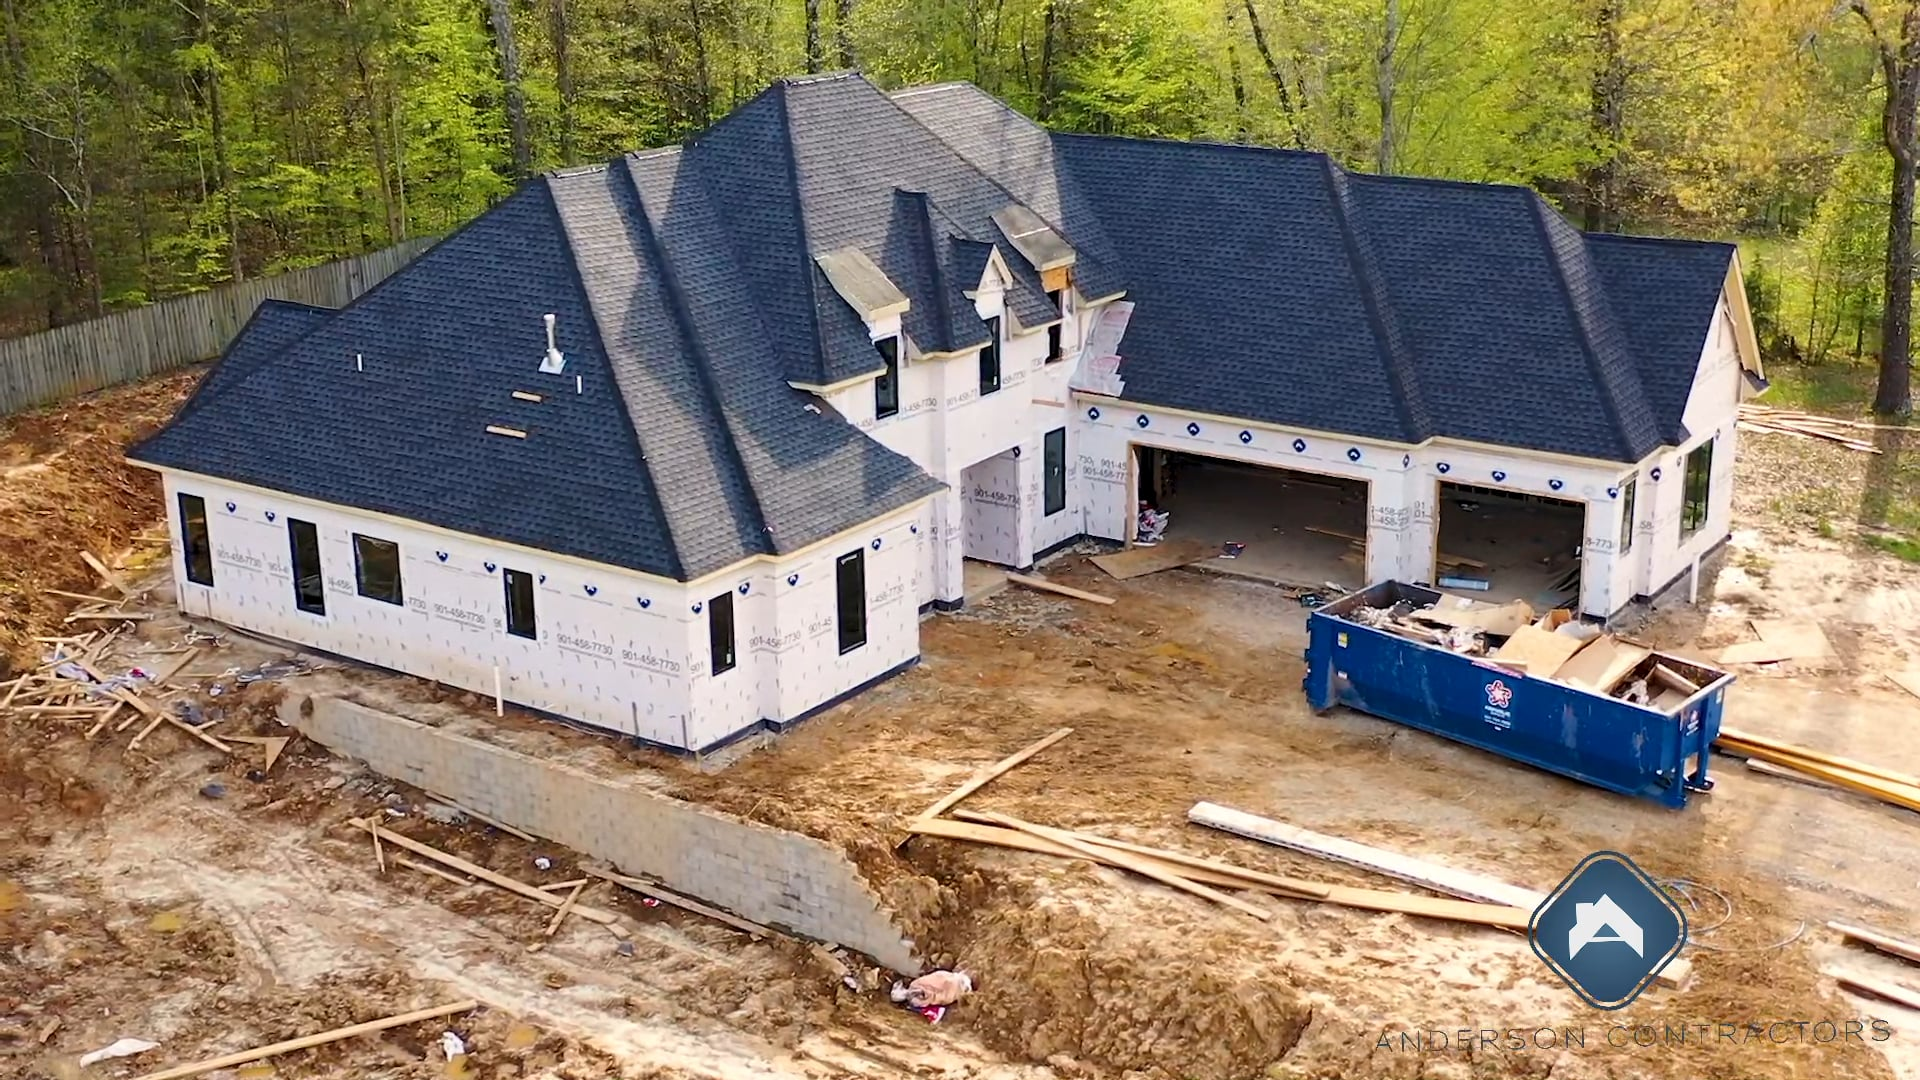 Anderson Contractors Company Overview